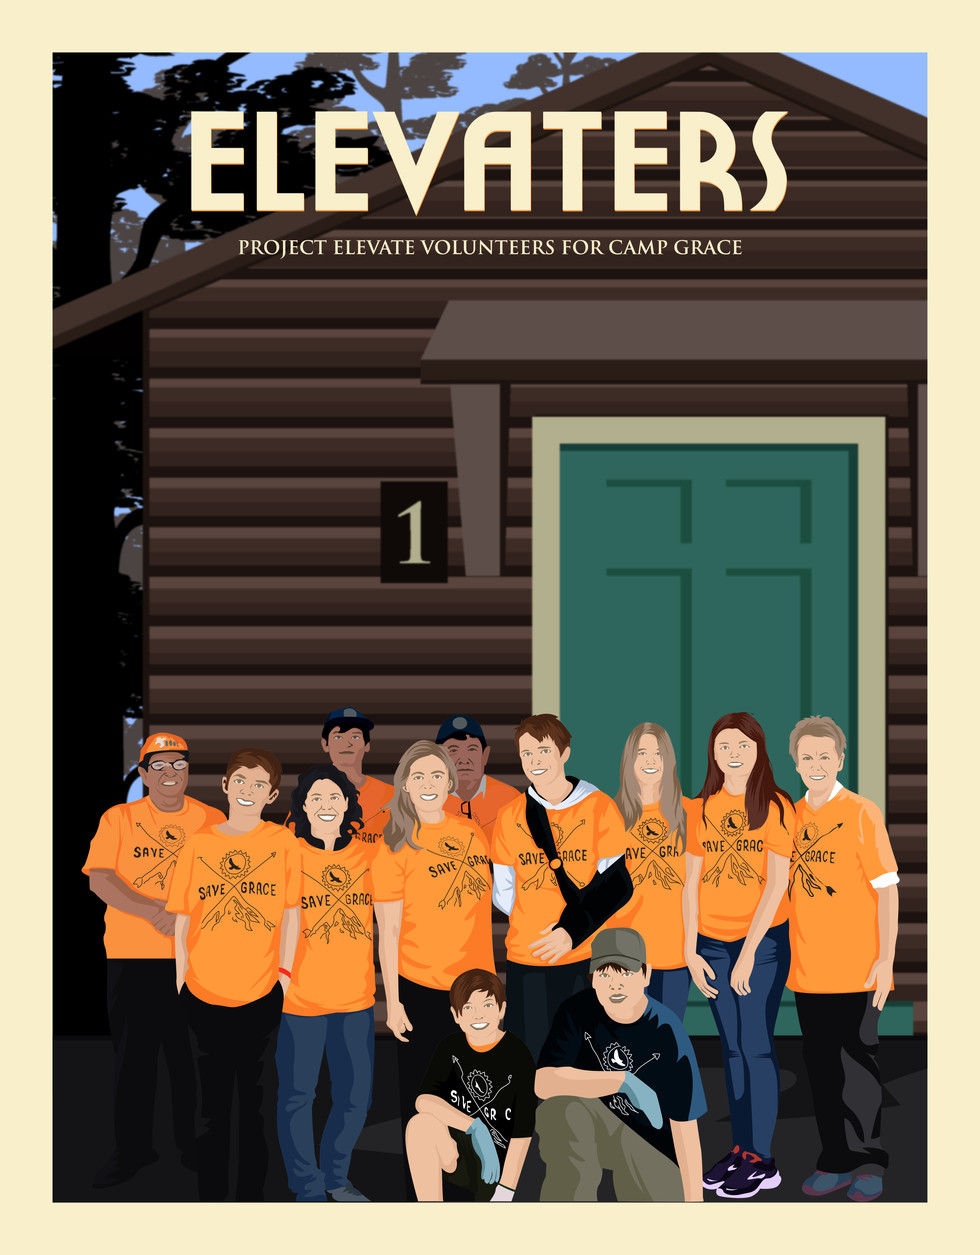 """""""Elevaters"""" are Project Elevate and Camp Grace Volunteers"""